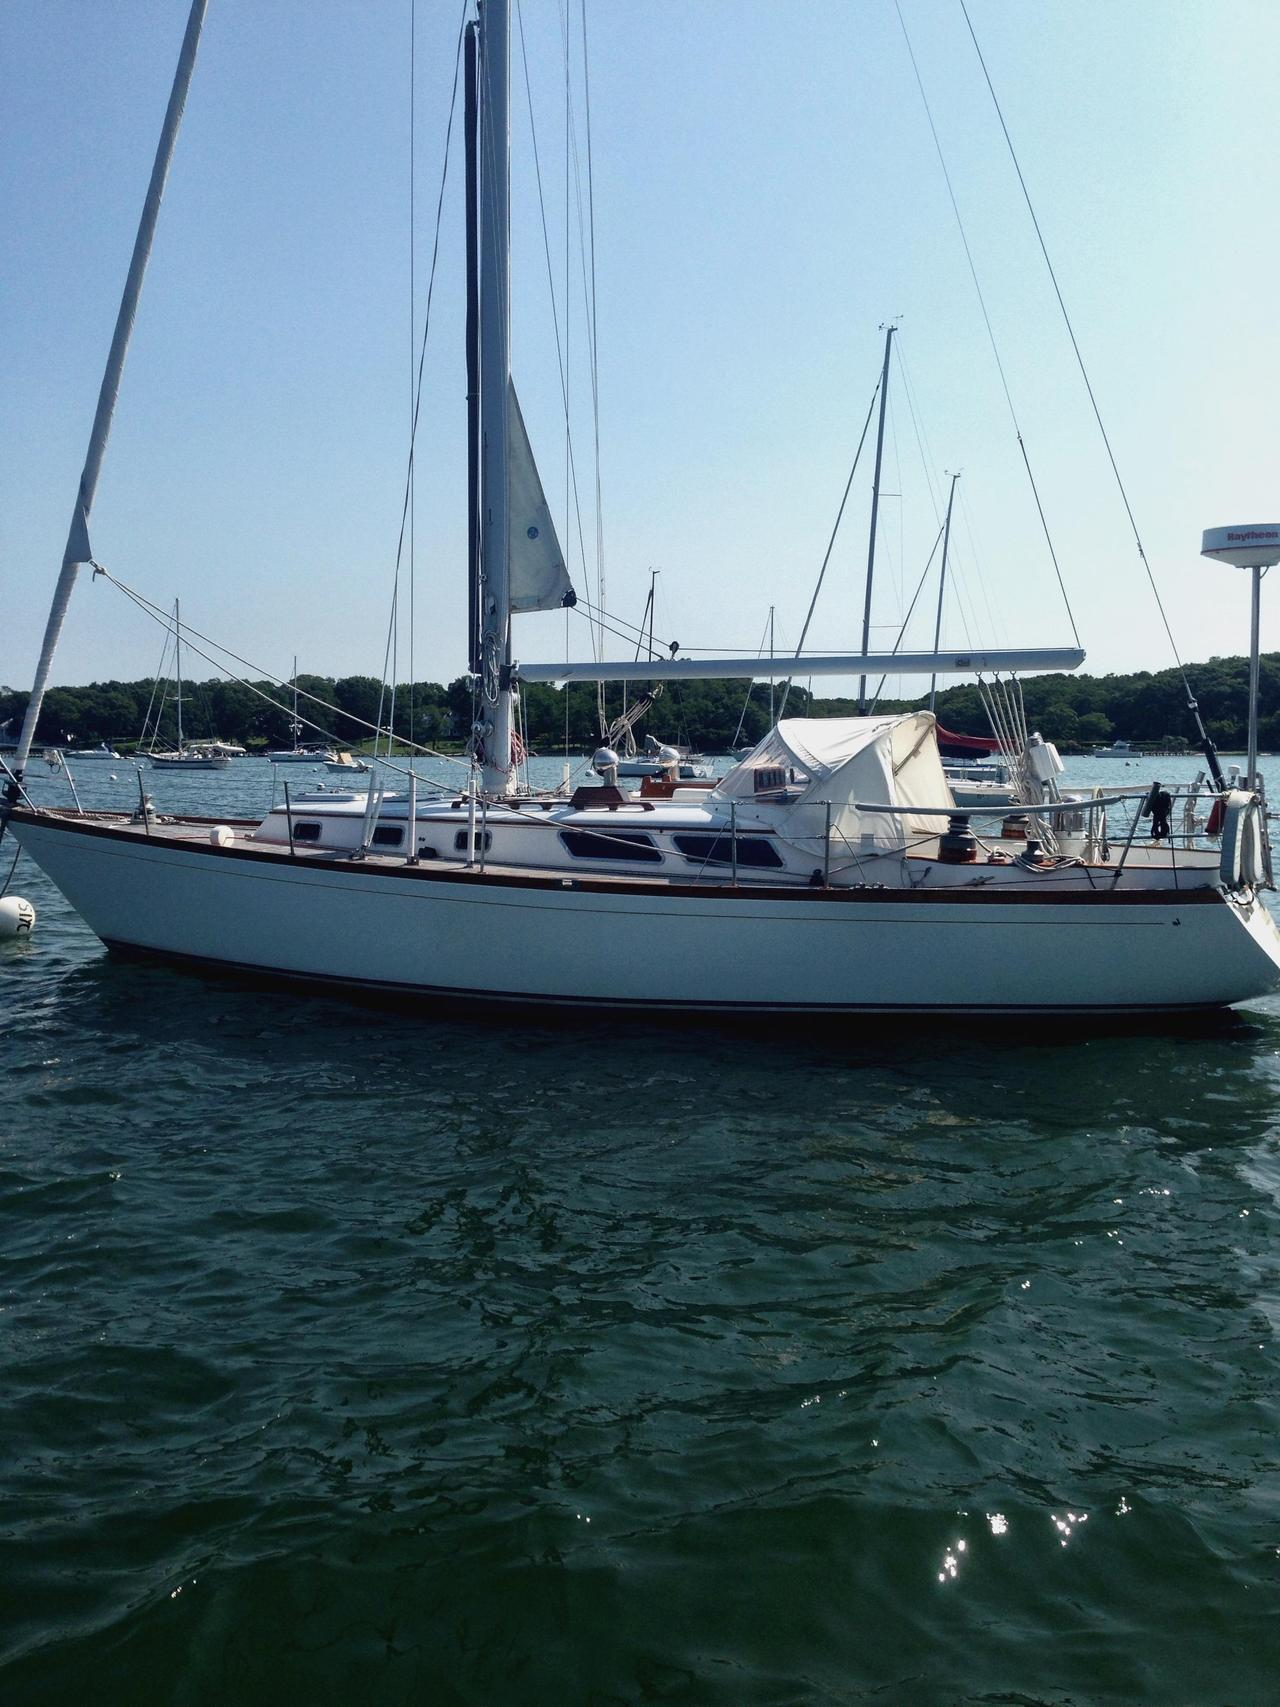 1980 Used Little Harbor Centerboard Sloop Cruiser Sailboat For Sale